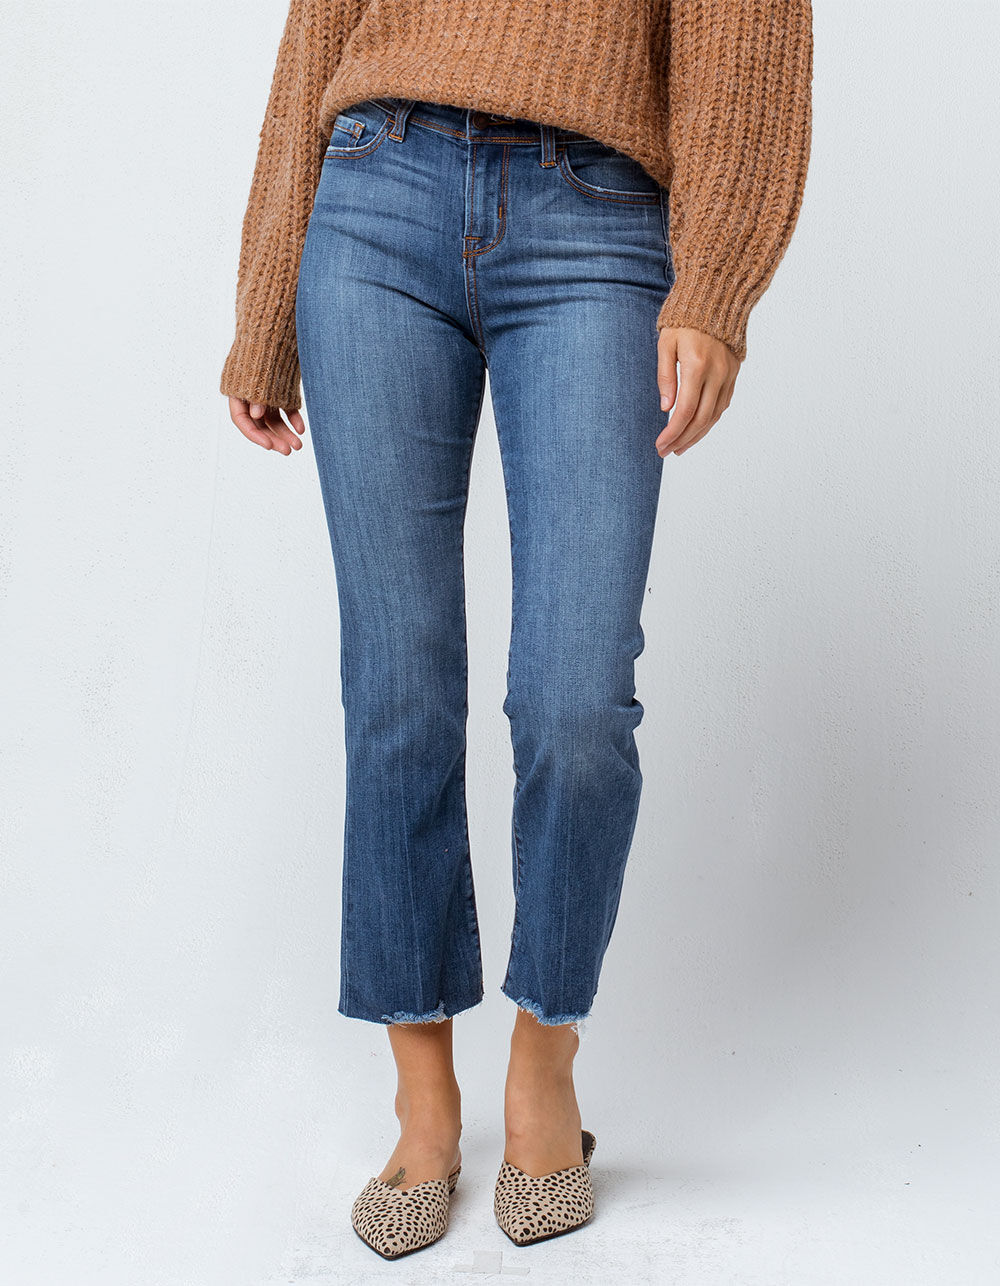 SKY AND SPARROW Fray Ankle Crop Flare Jeans